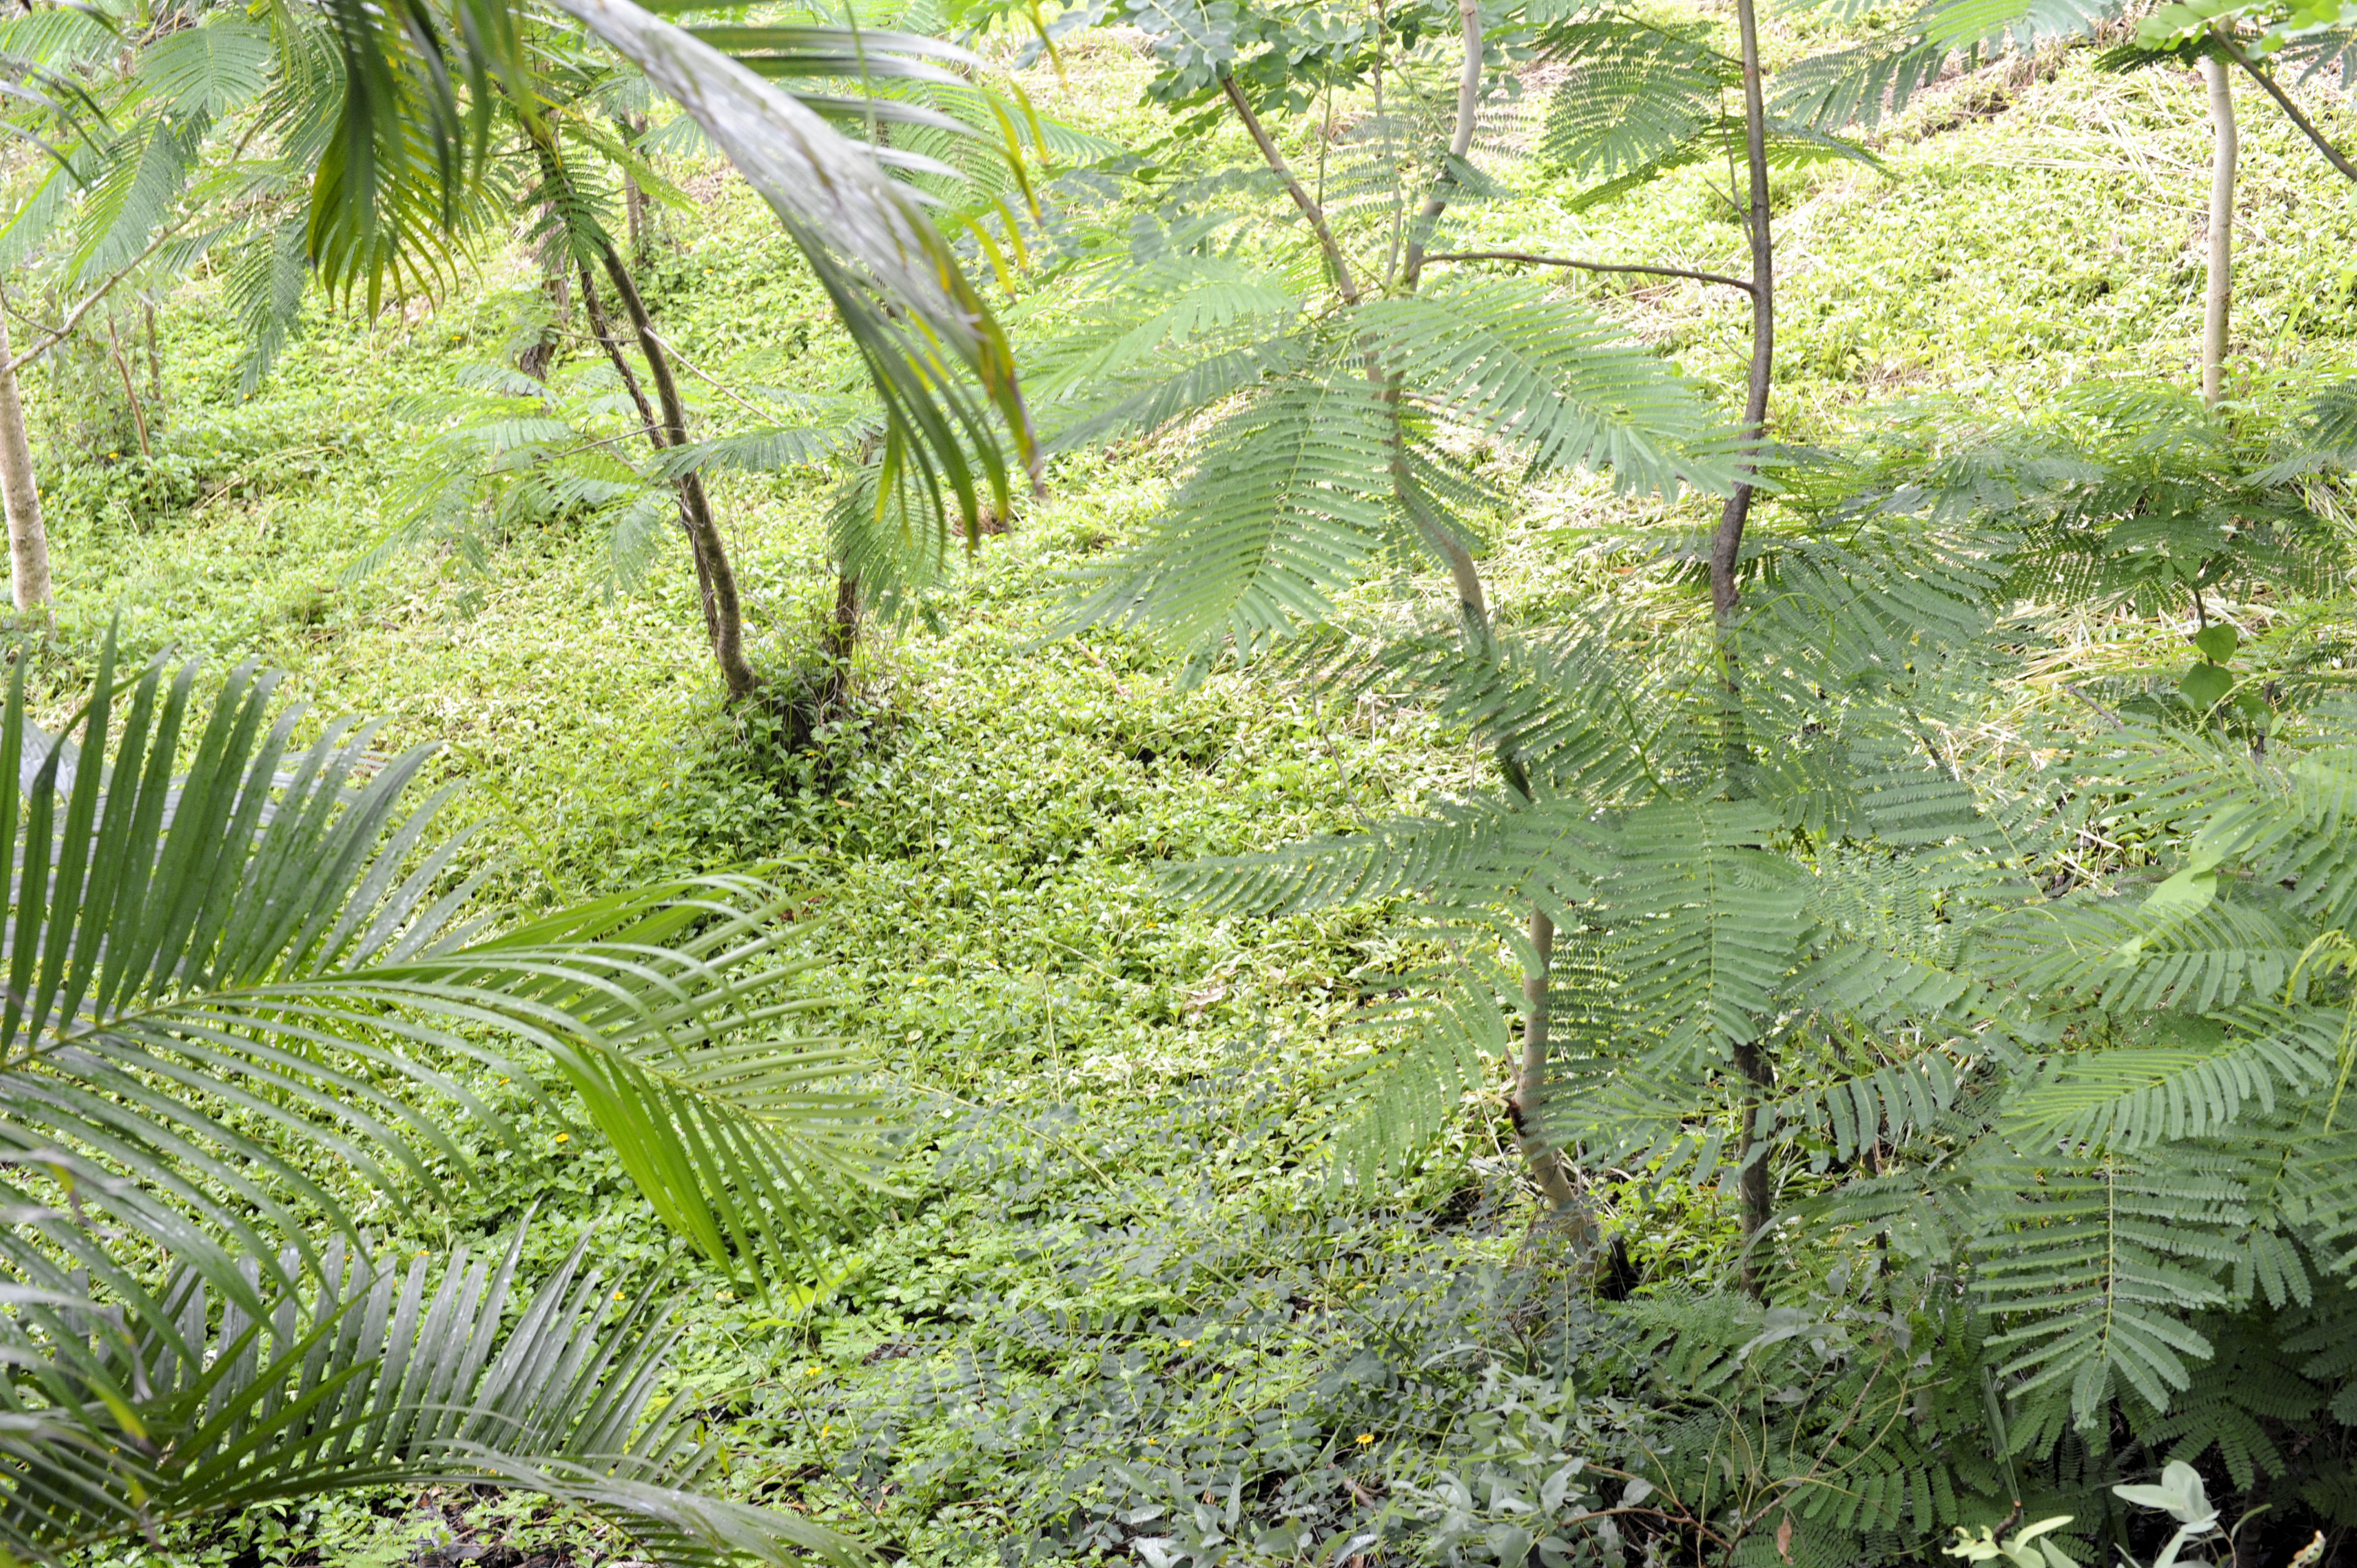 High Angle View of Tropical Scene with Young Palm Trees and Lush Green Ground Cover